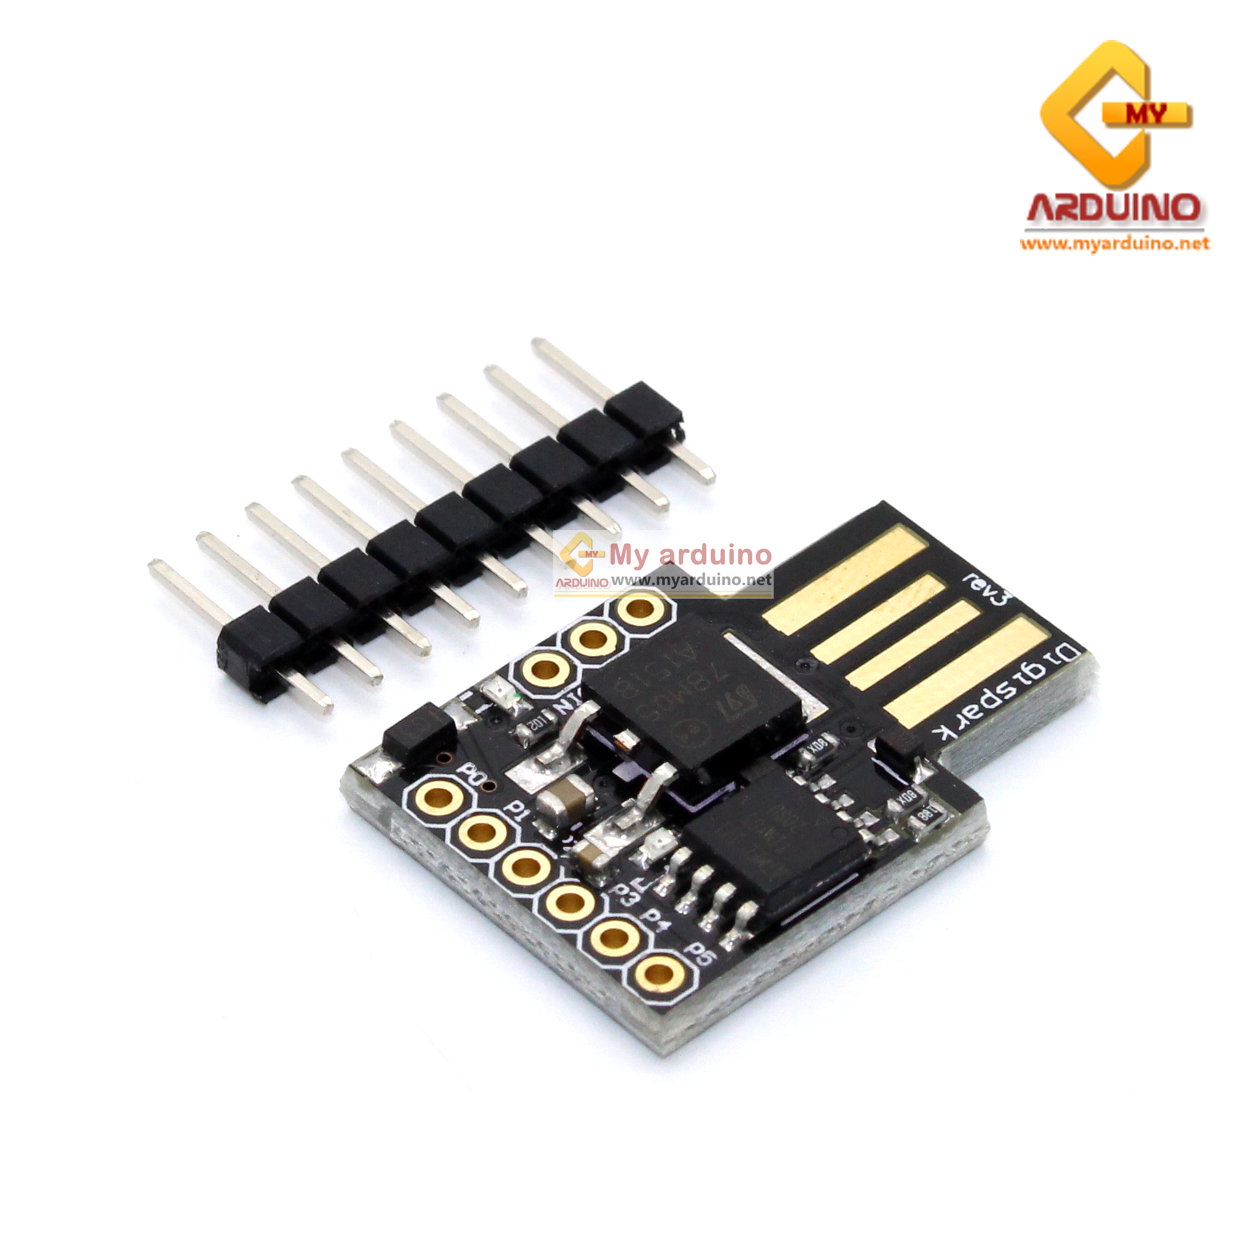 Digispark Arduino บอร์ดพลังจิ๋ว ATTiny85 Digispark Development Board ATtiny85 Digispark ATtiny85